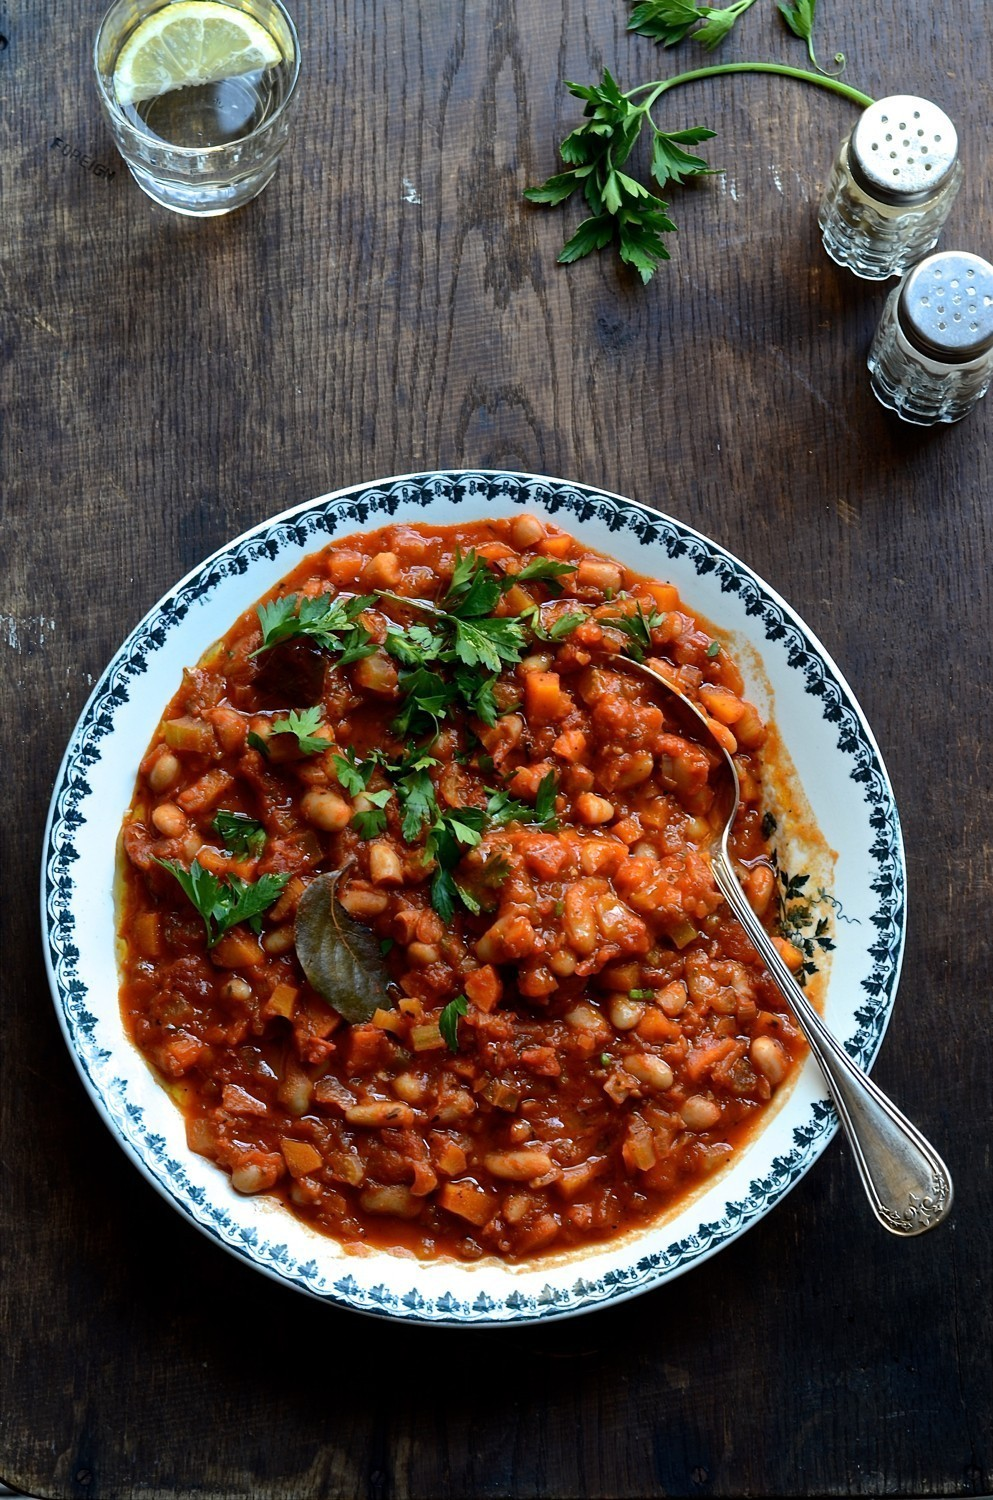 Fennel and cannellini bean stew | Bibbyskitchen recipes | Vegan recipes |